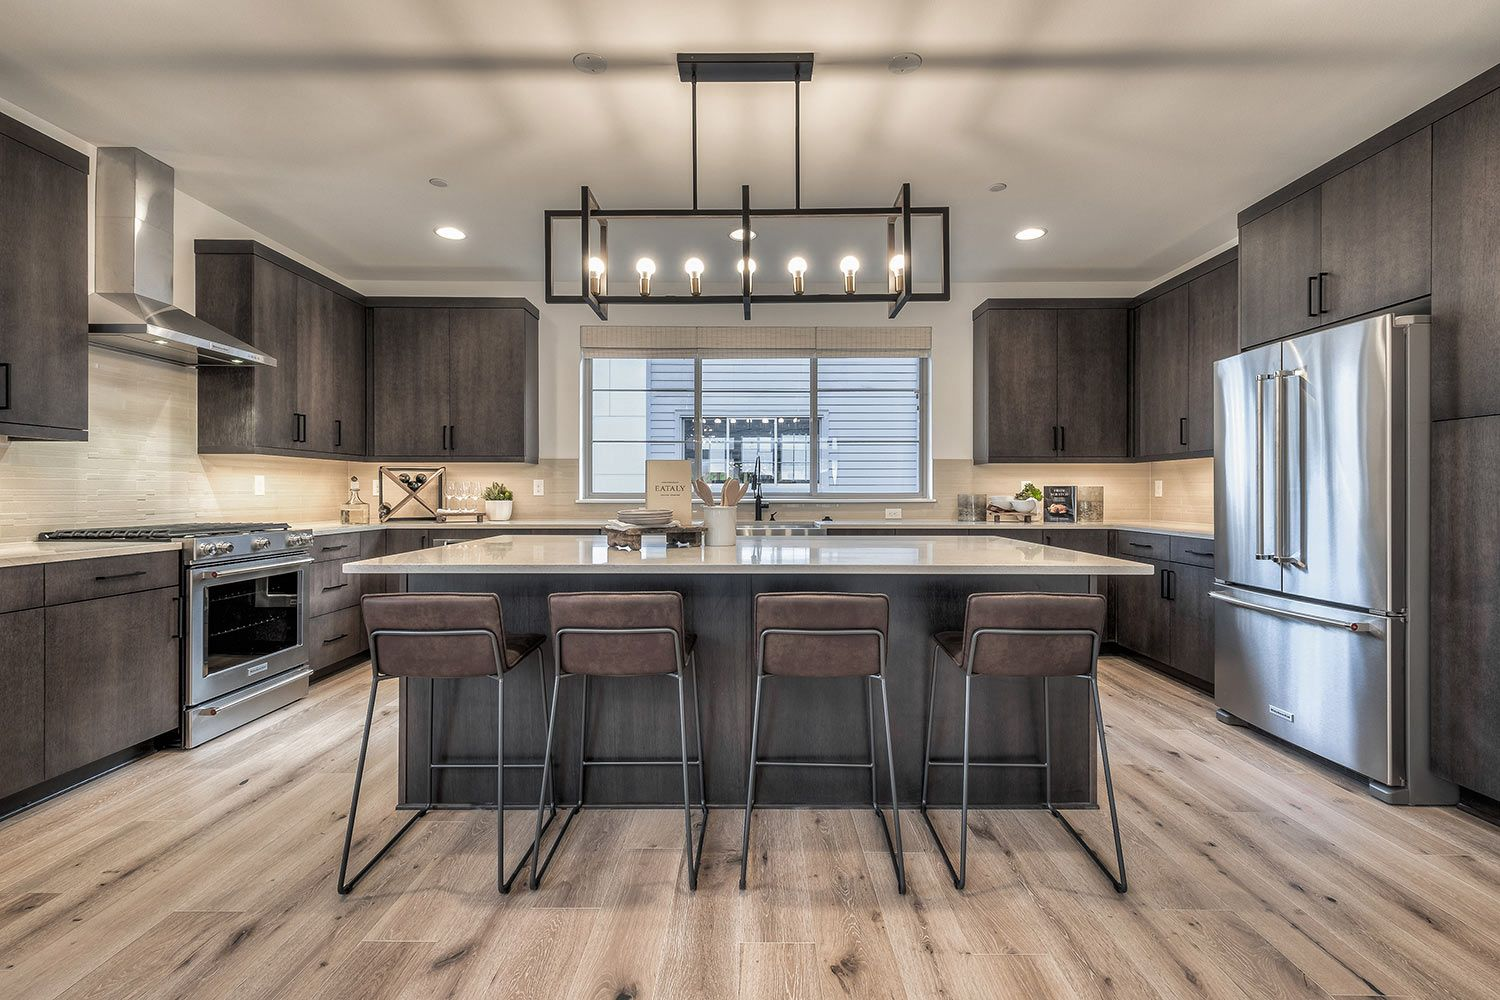 Kitchen featured in the Vareze Plan 8 By Quadrant Homes in Seattle-Bellevue, WA